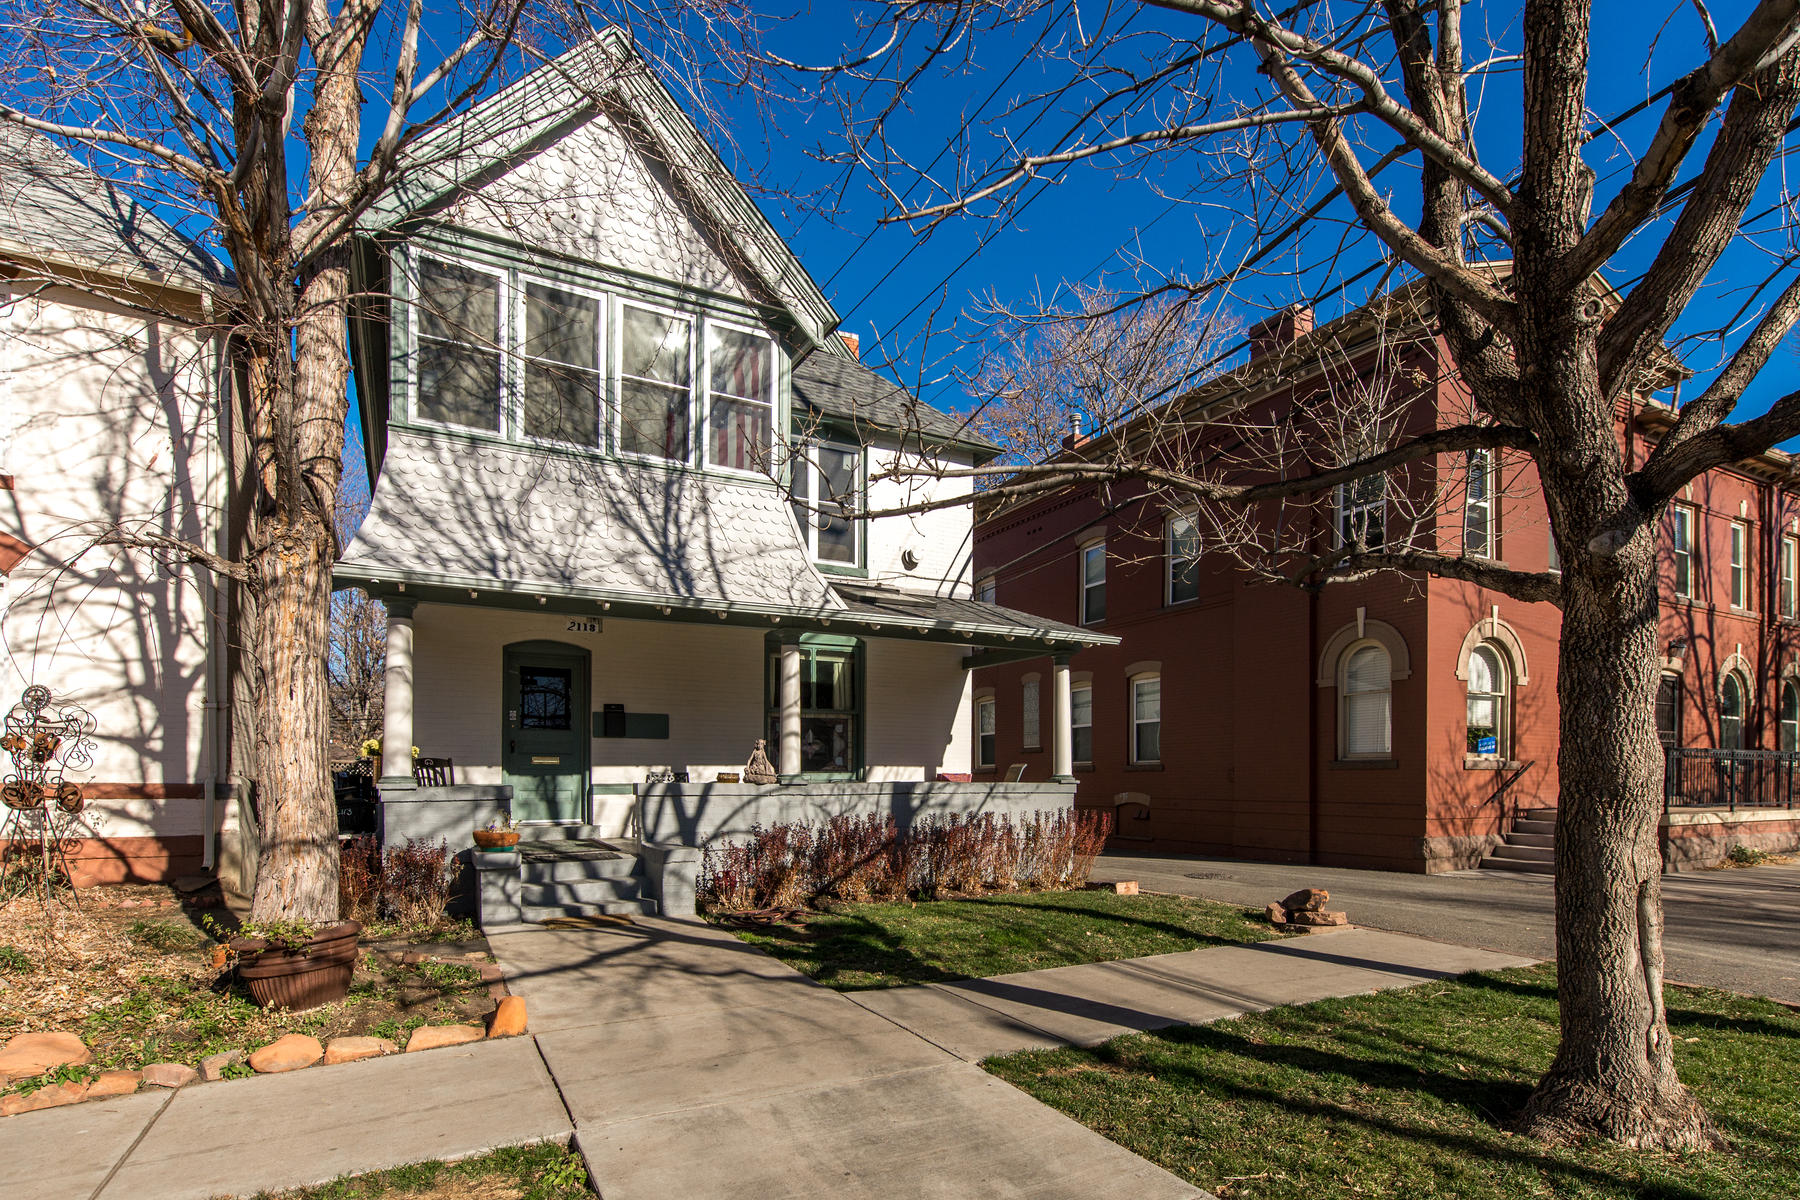 Additional photo for property listing at 6 Units - Investment Opportunity! 2113 E 16th Avenue Denver, Colorado 80206 United States